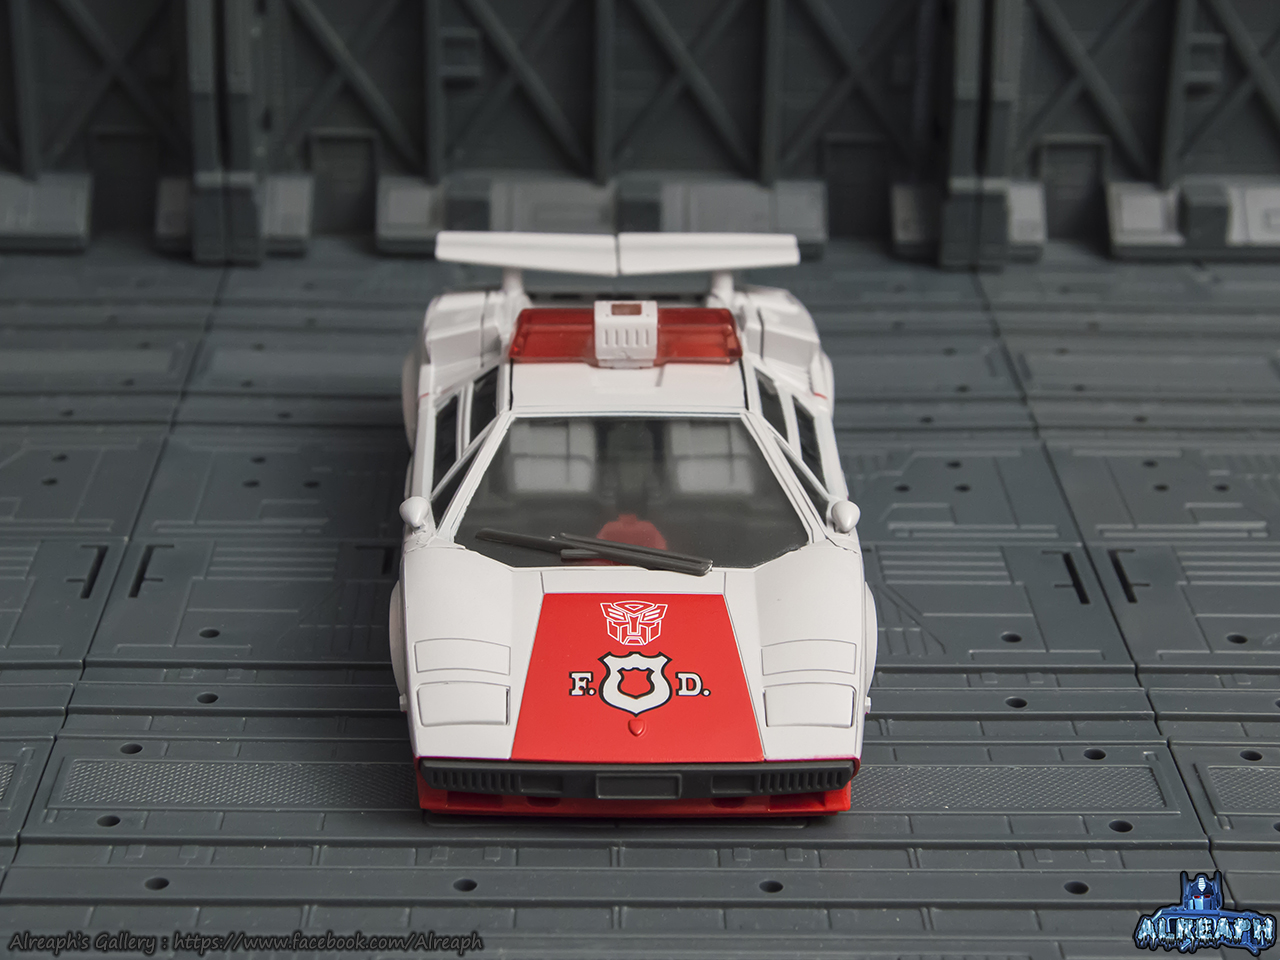 [Masterpiece] MP-14 Red Alert/Feu d'Alerte - Page 2 KNX0Ztu5